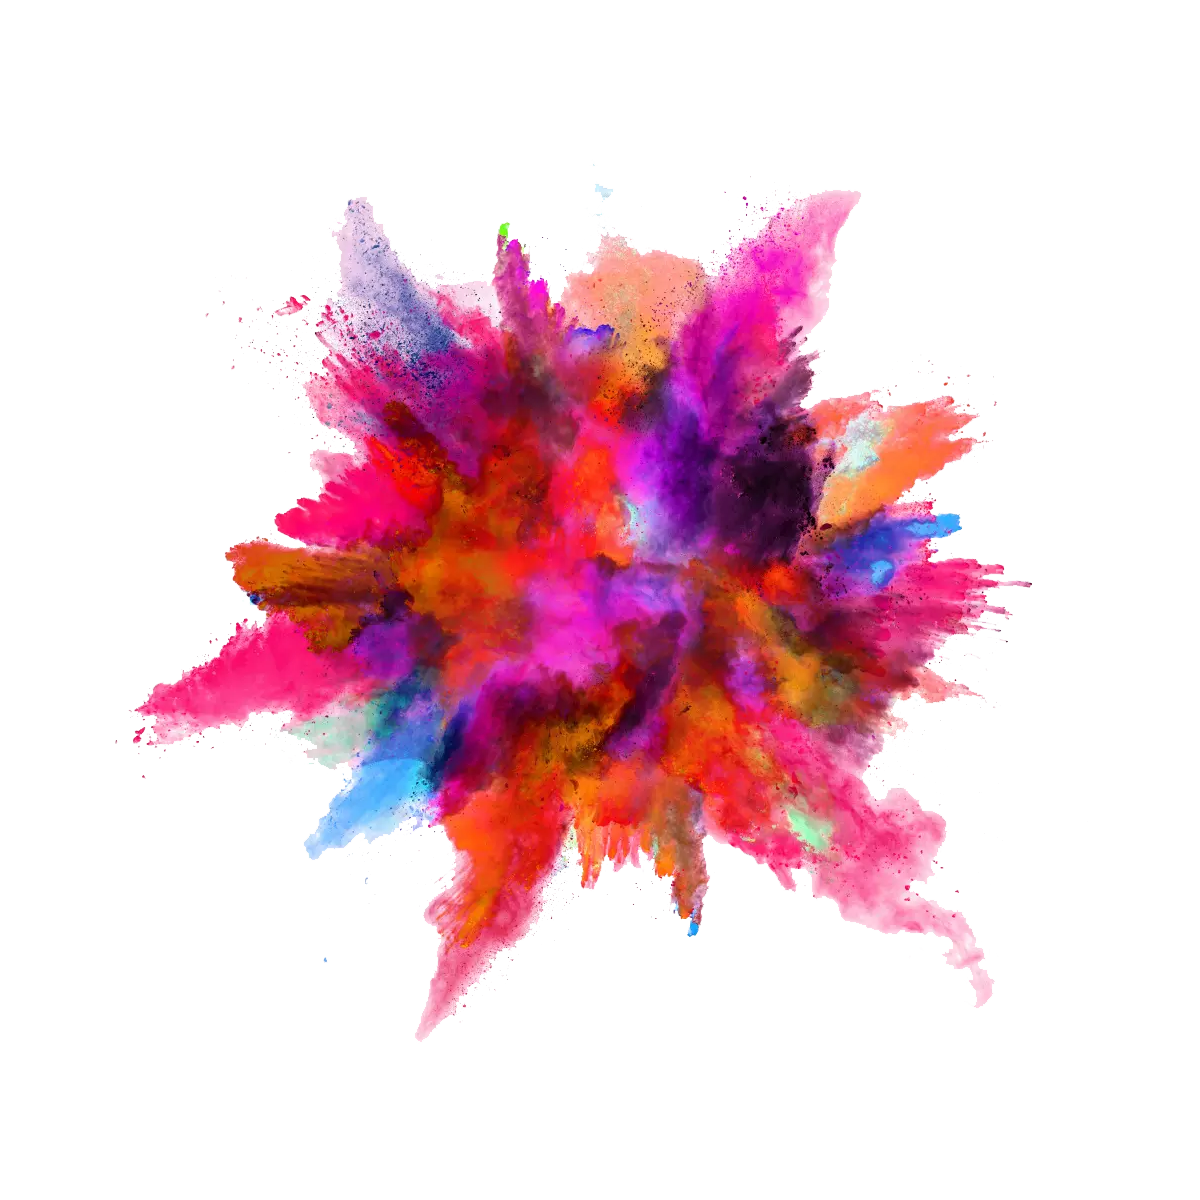 color powder explosion png image purepng free spray paint splatter vector free Splat Vector 9